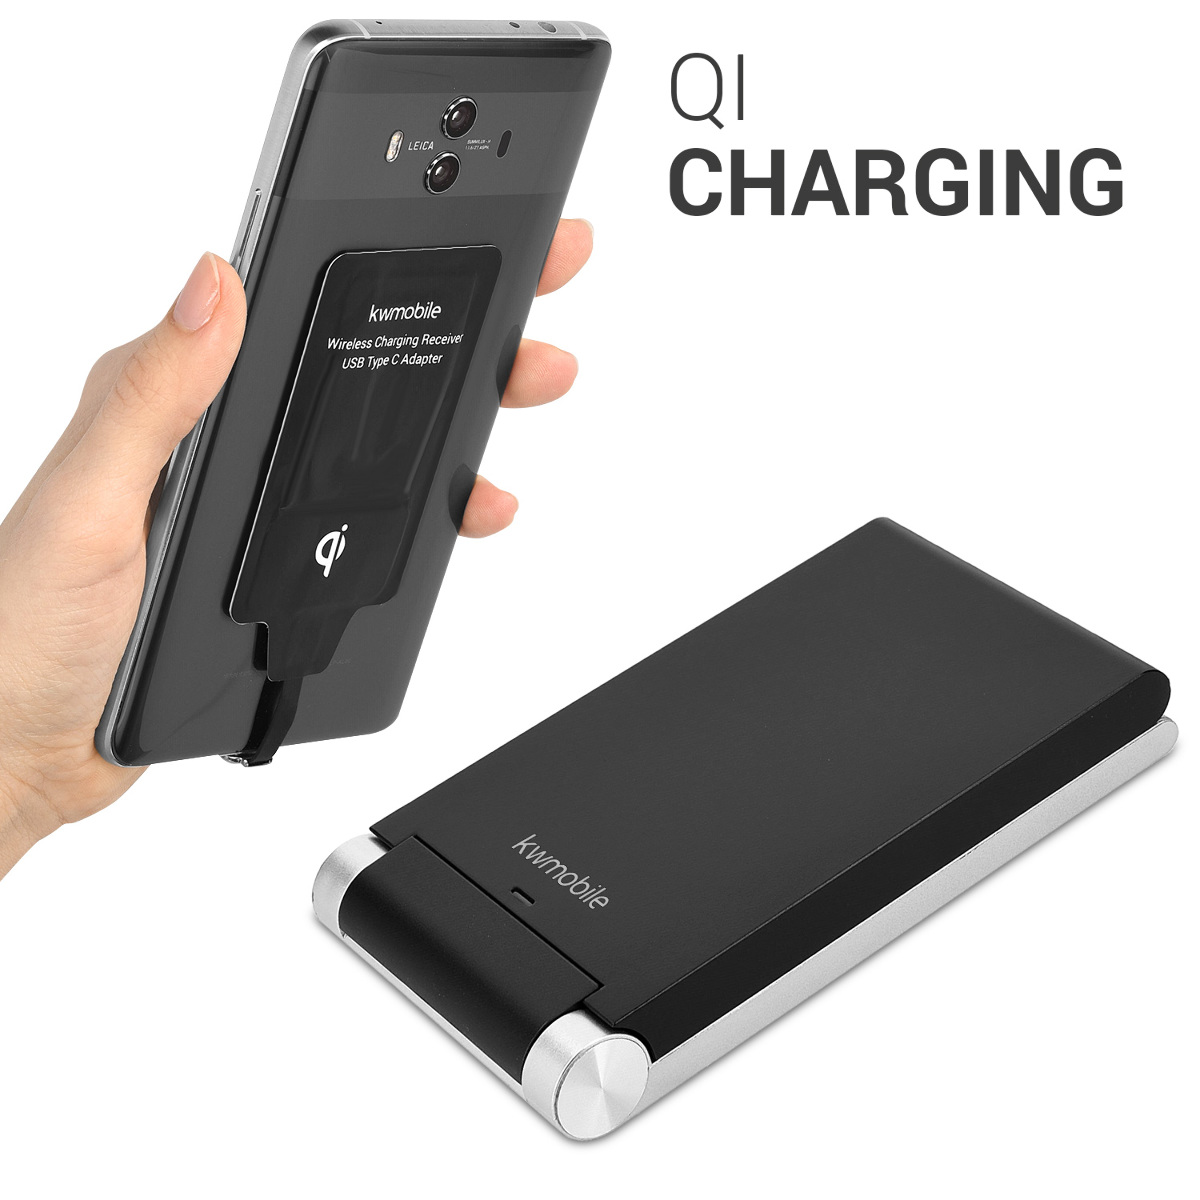 qi ladeempf nger usb c anschluss type c receiver qi ladestation smartphone ebay. Black Bedroom Furniture Sets. Home Design Ideas